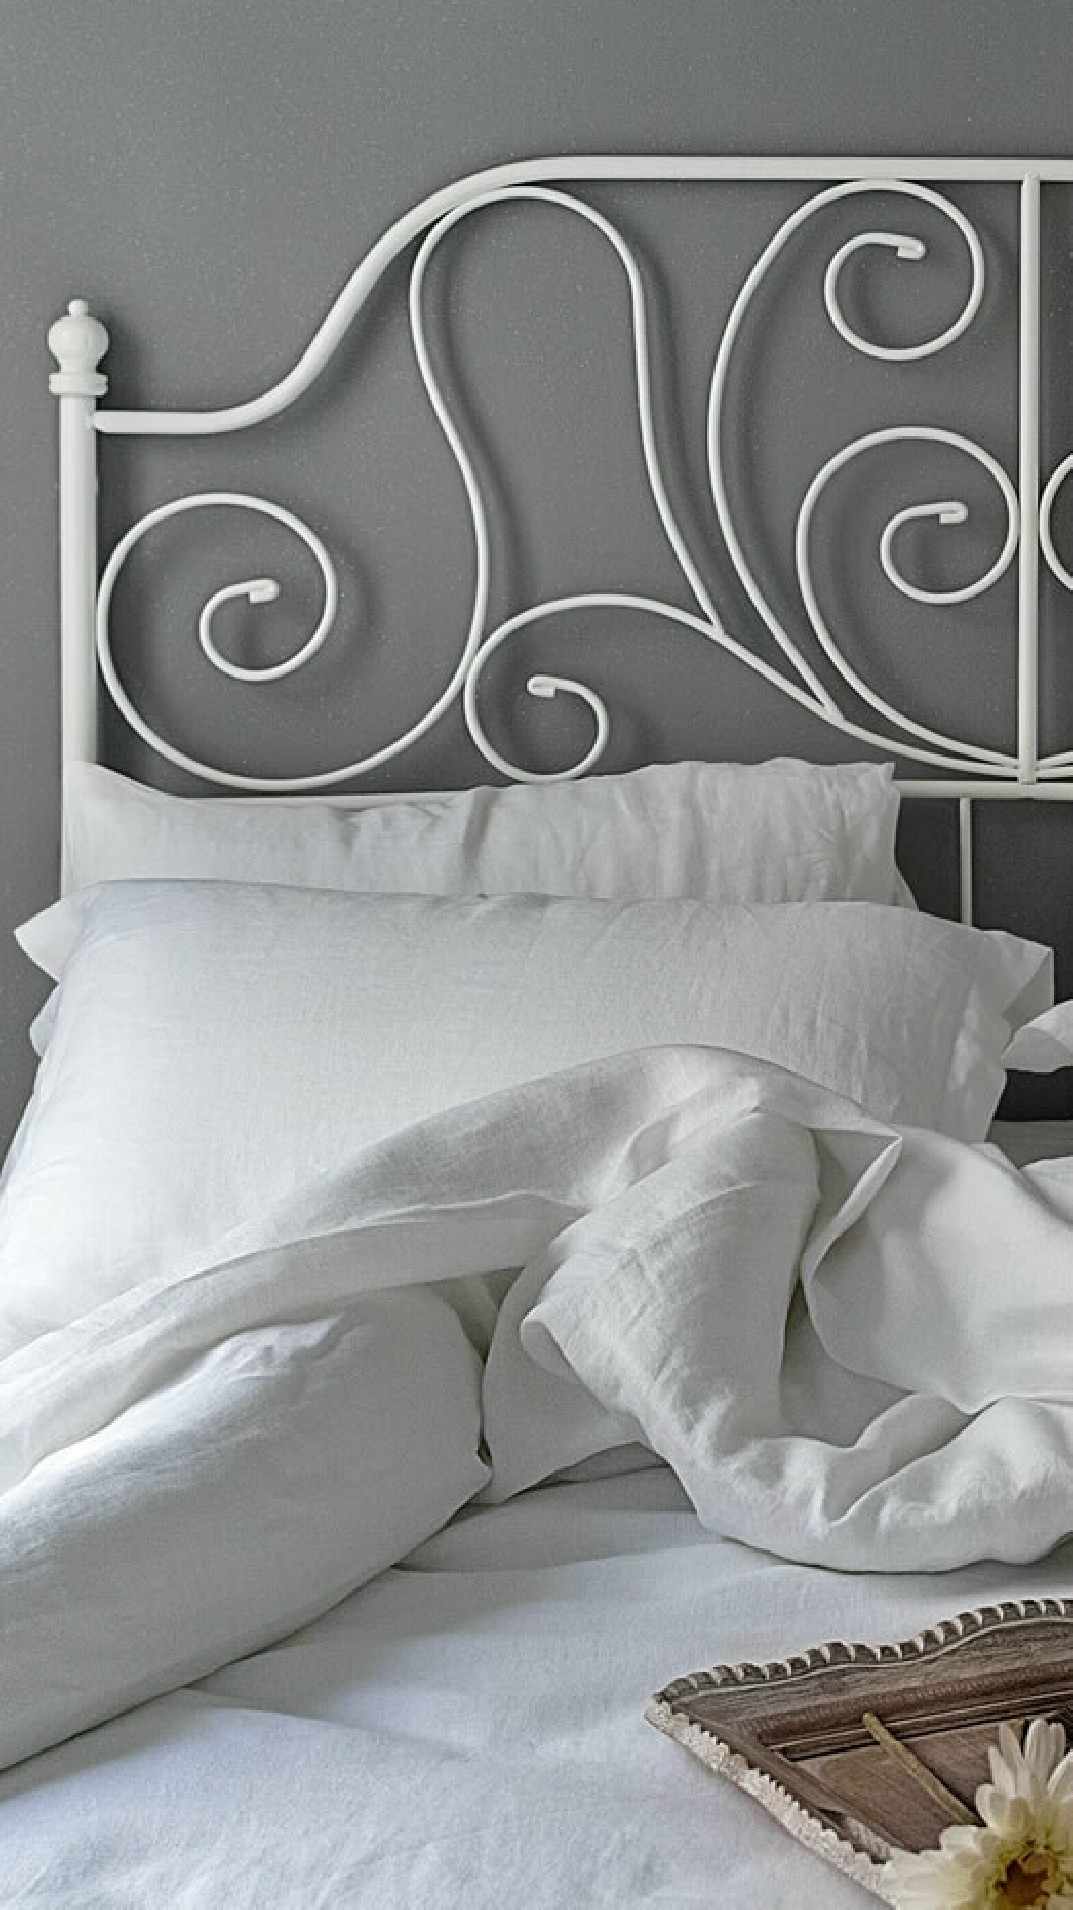 Pure Linen Flat Sheets from Connie Home